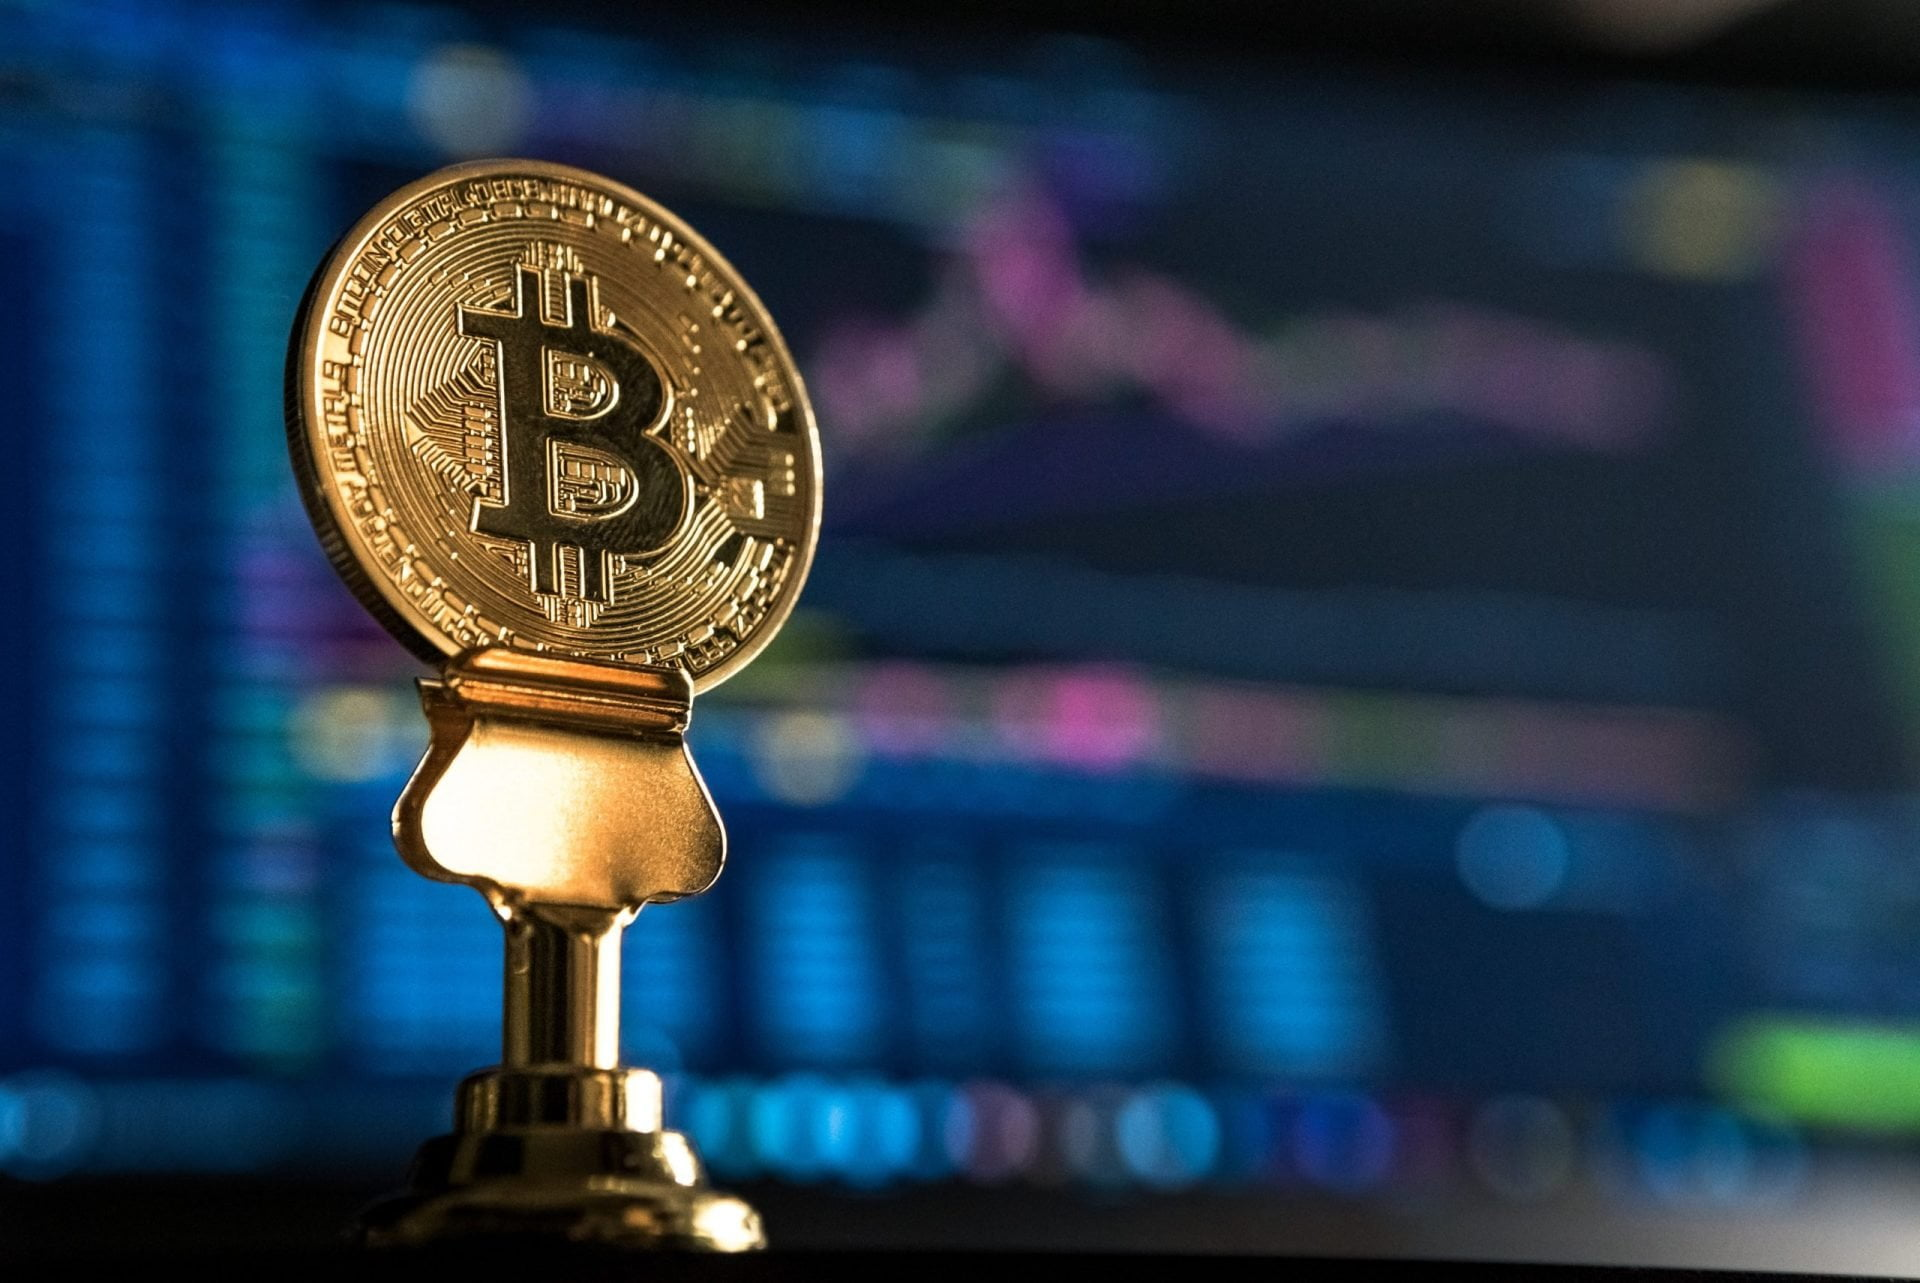 Bitcoin Bursts Past $10,000 (Again): Will Bulls Keep Up? 22